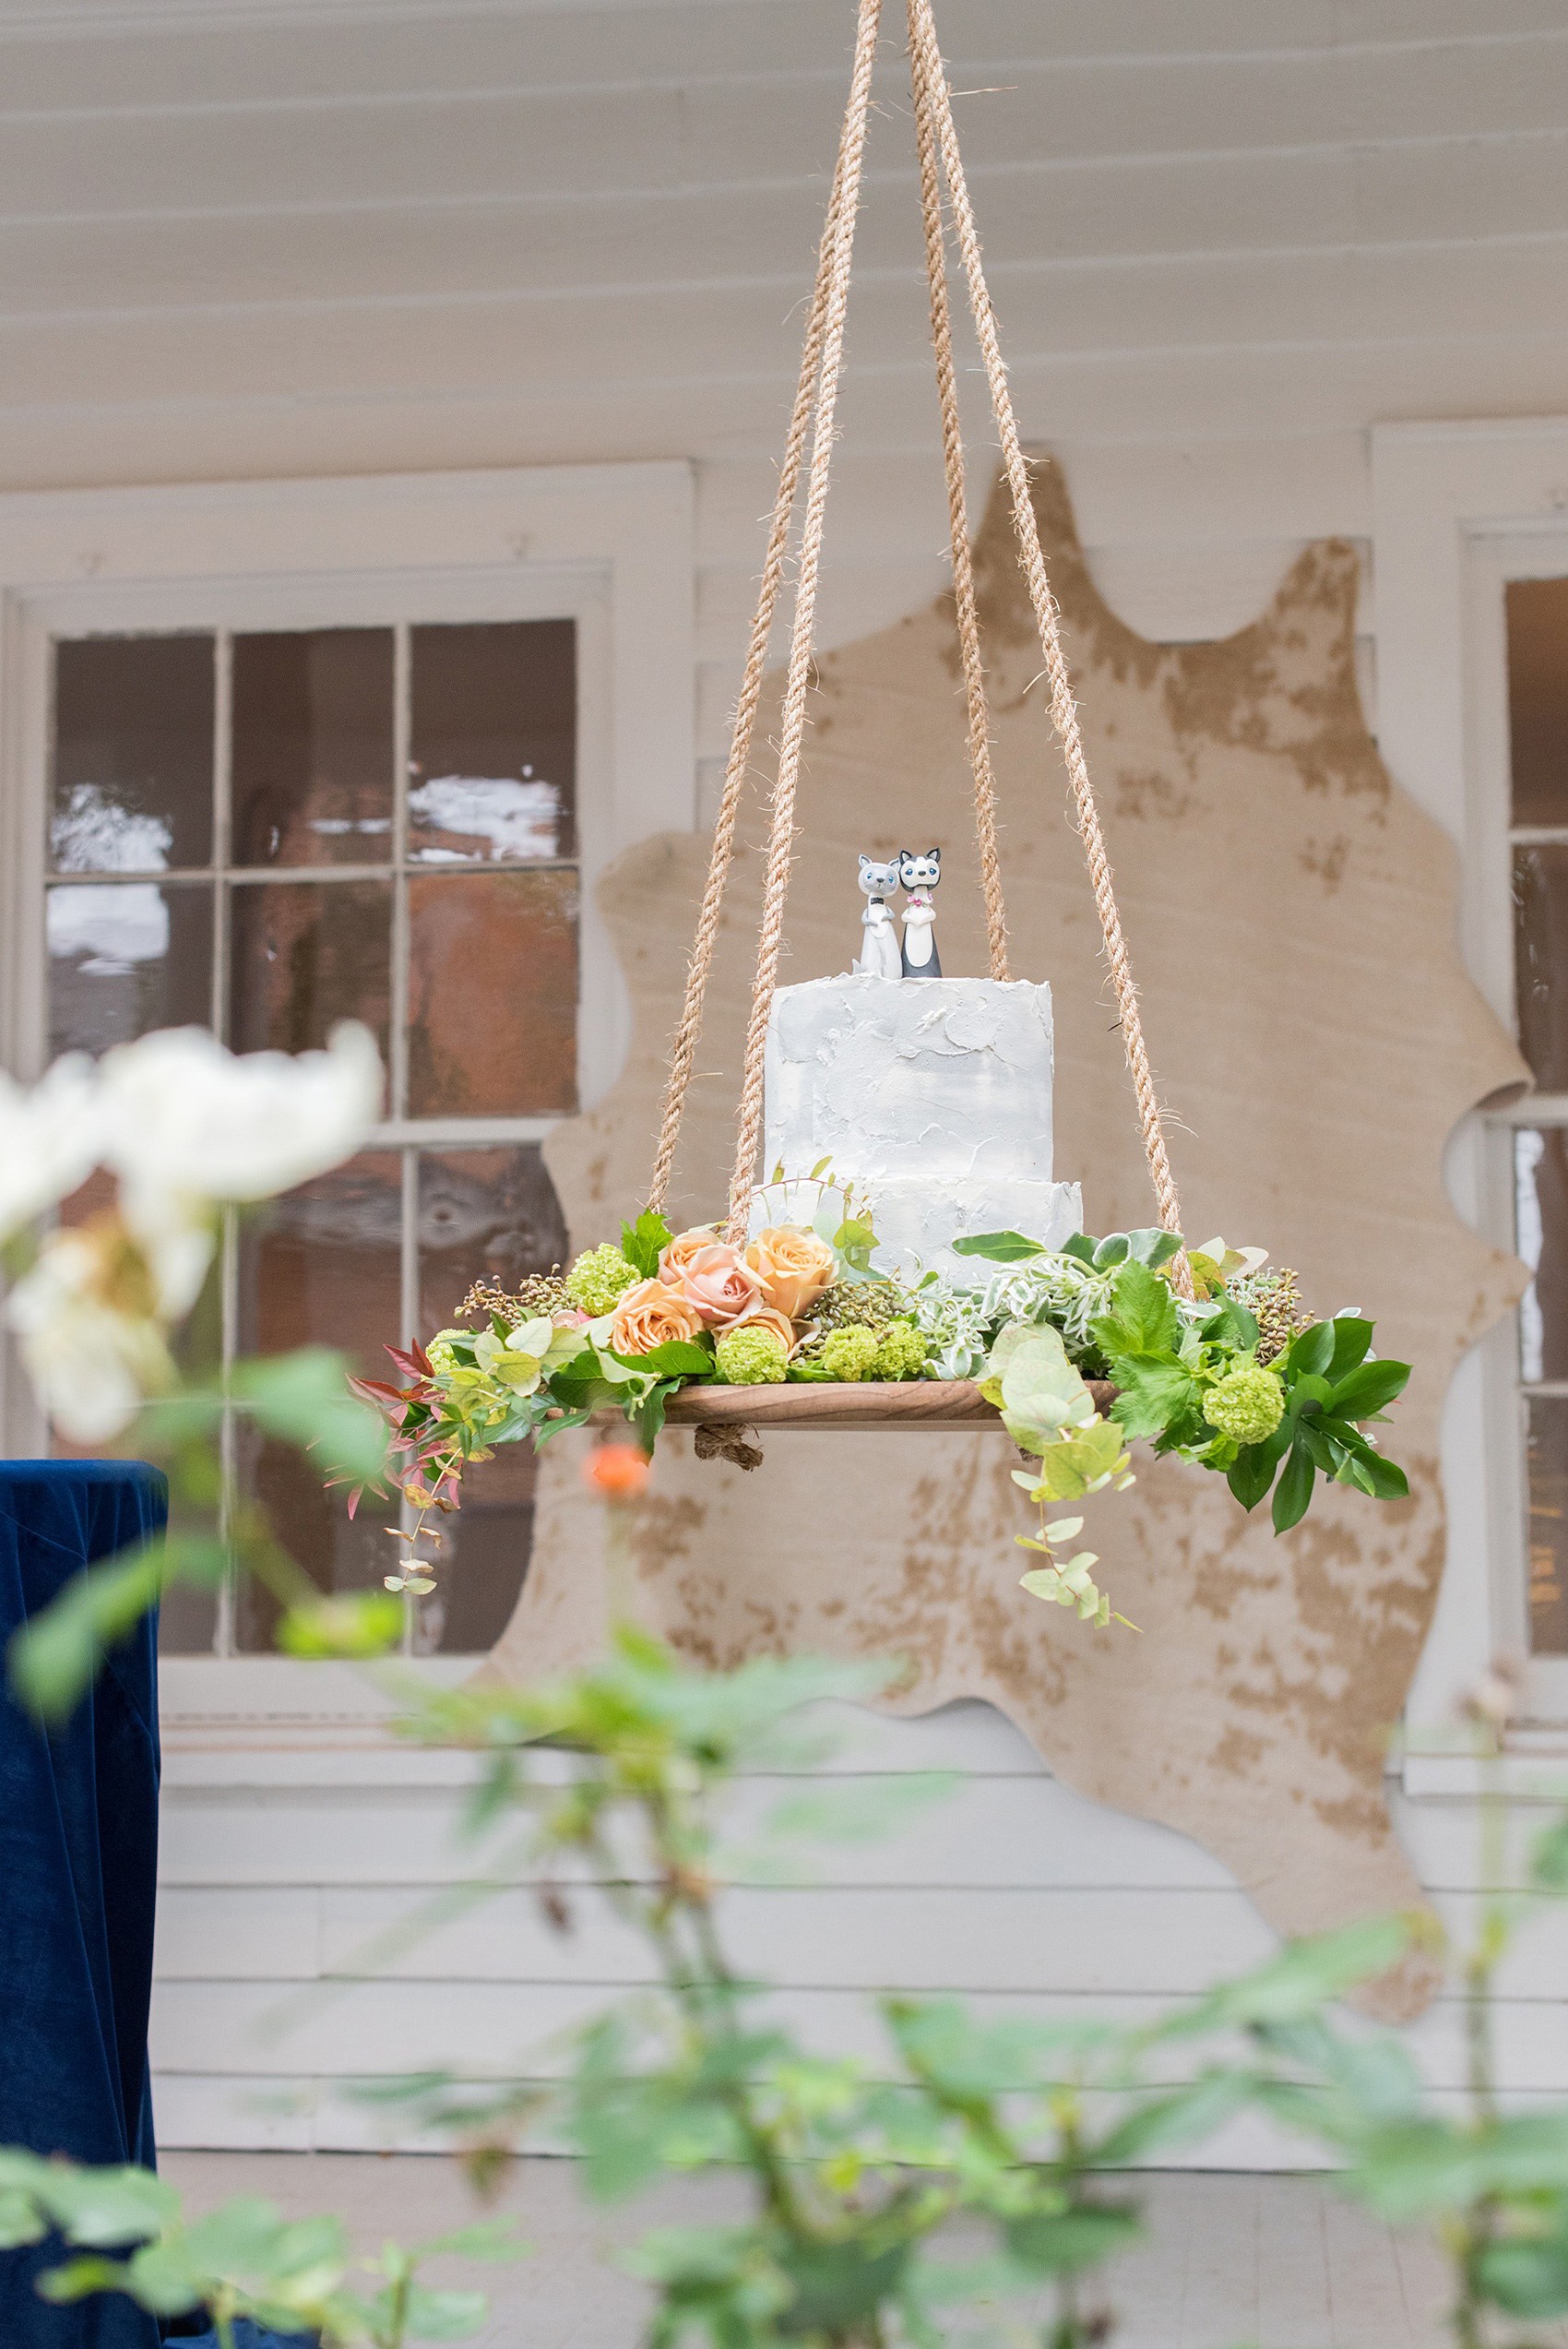 Mikkel Paige Photography photos from a wedding at Leslie-Alford Mims House in North Carolina. Picture of a unique boho cake display: a grey concrete buttercream cake with clay animal cake topper, suspended from the venue on a rope display adorned with flowers.